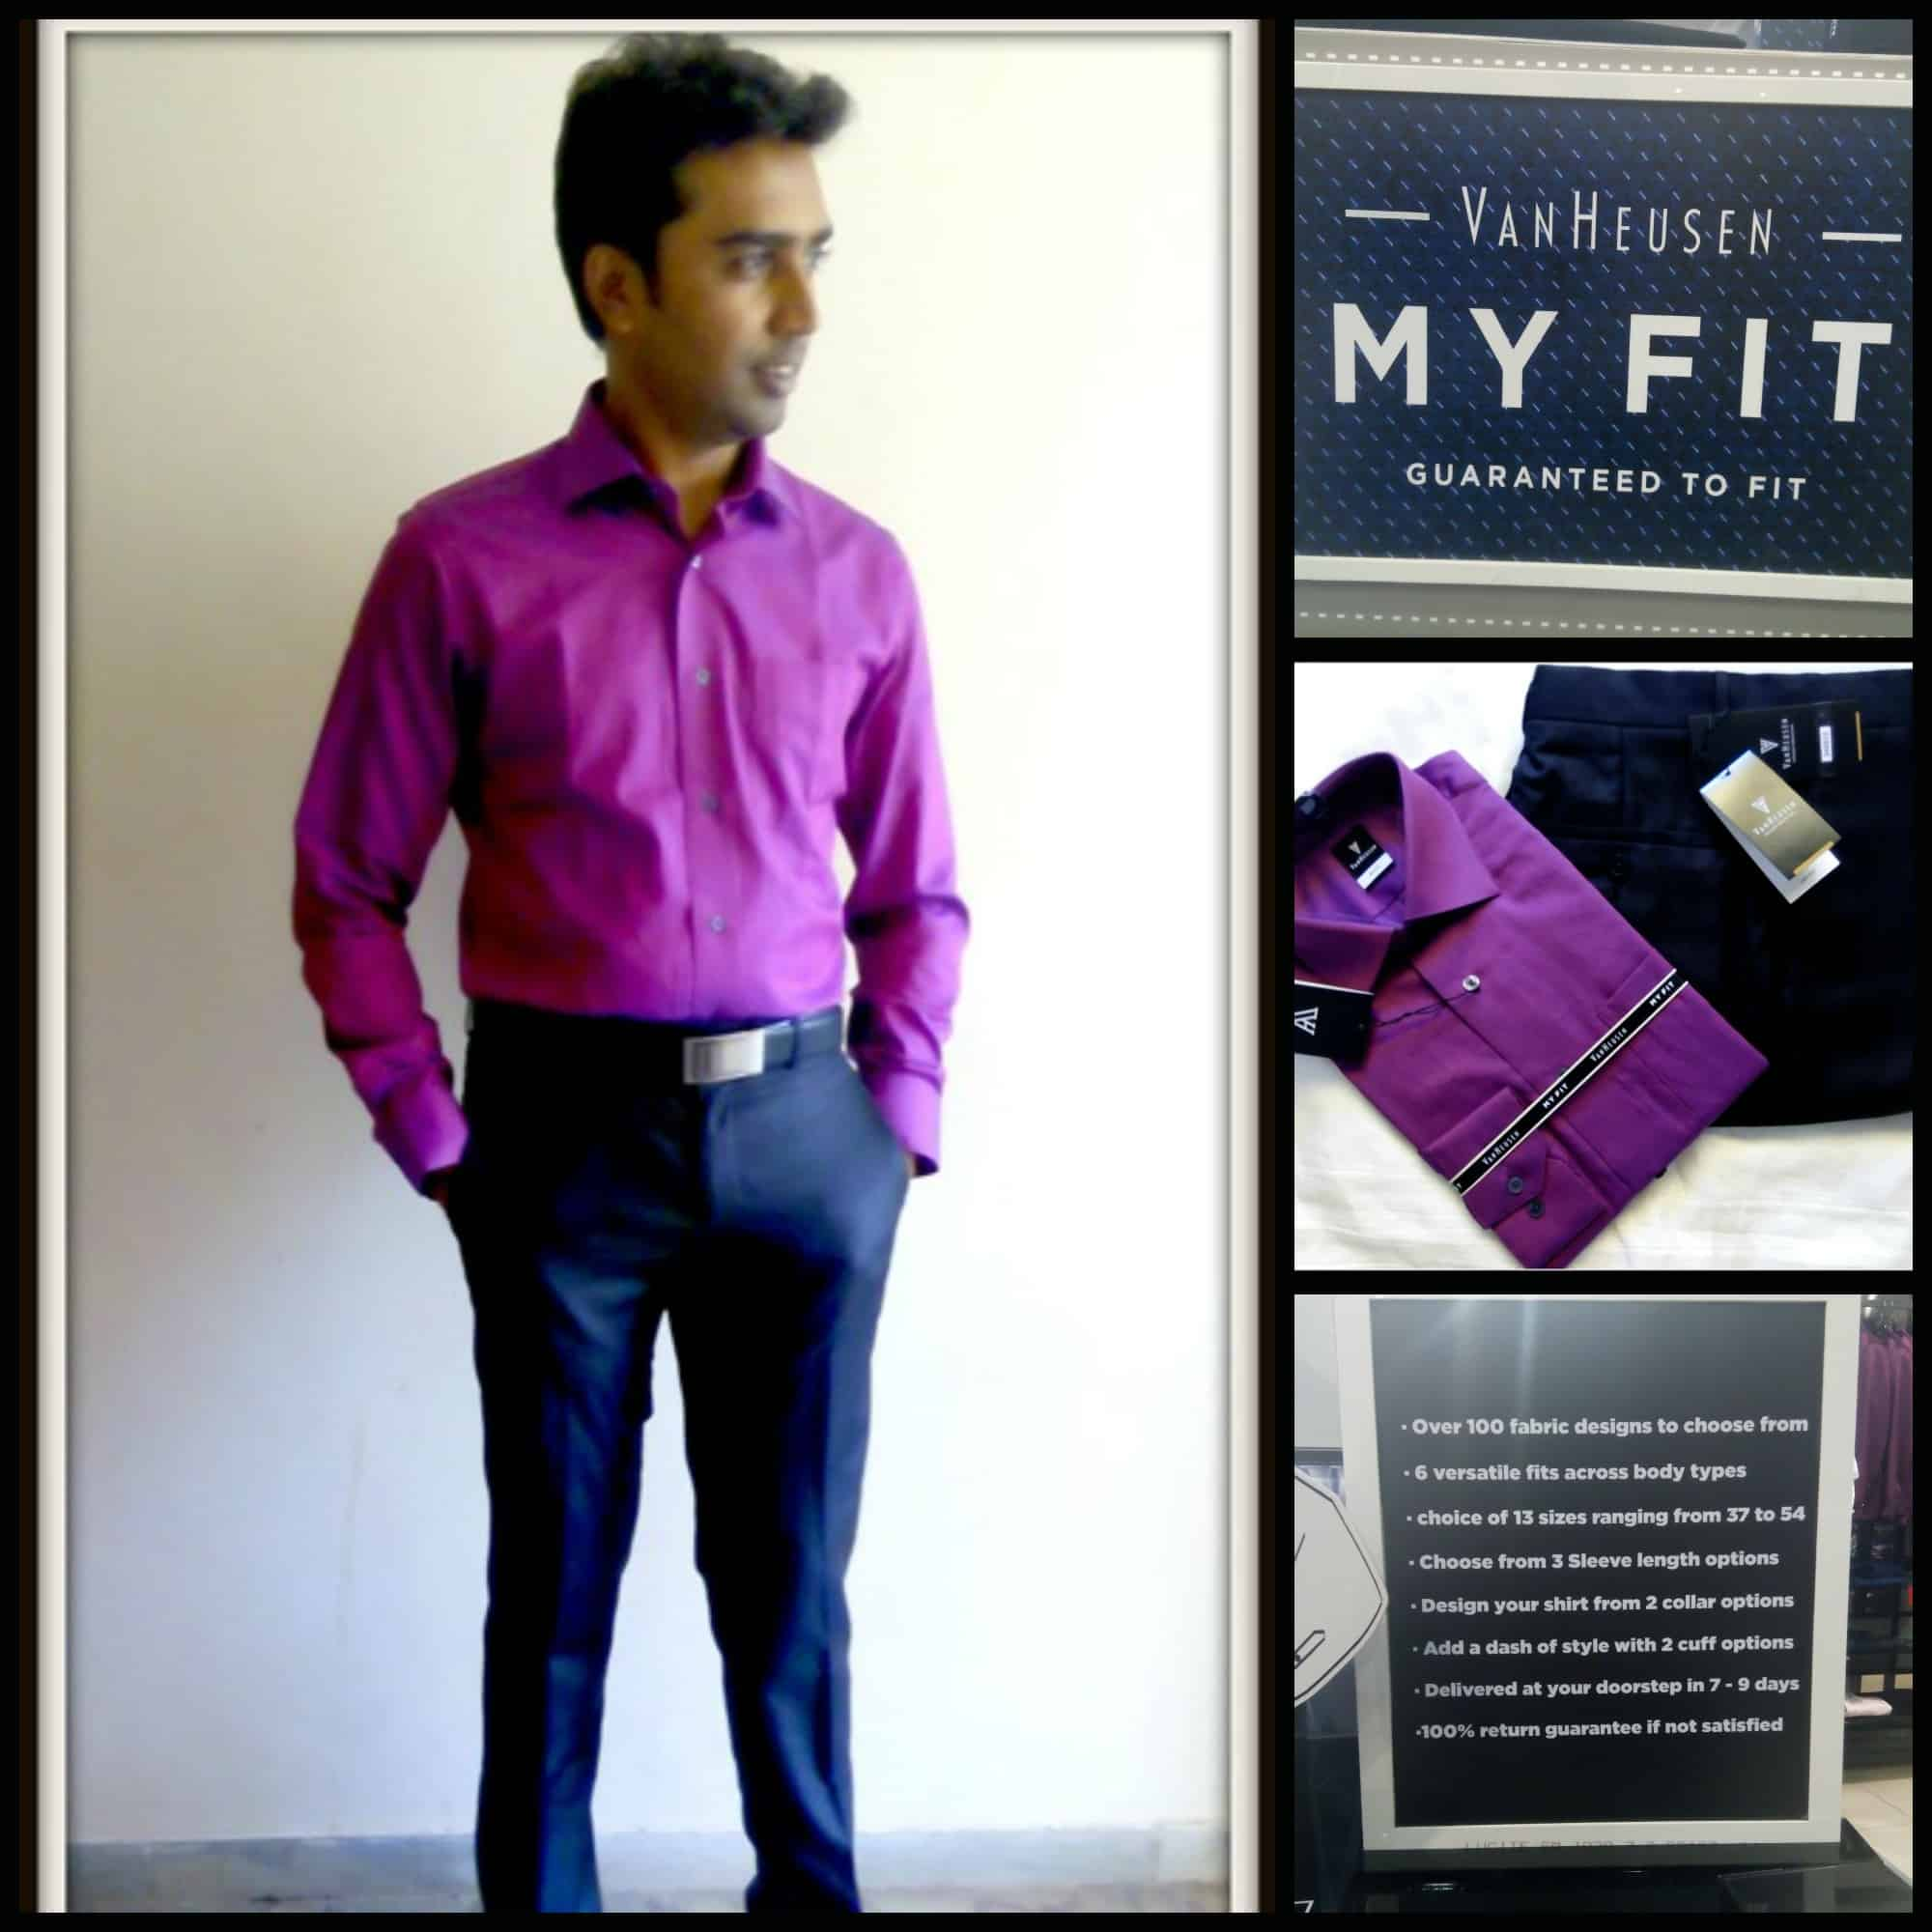 Van Heusen MYFIT for Men – The Ultimate Solution to Get Perfectly Fitted Formals